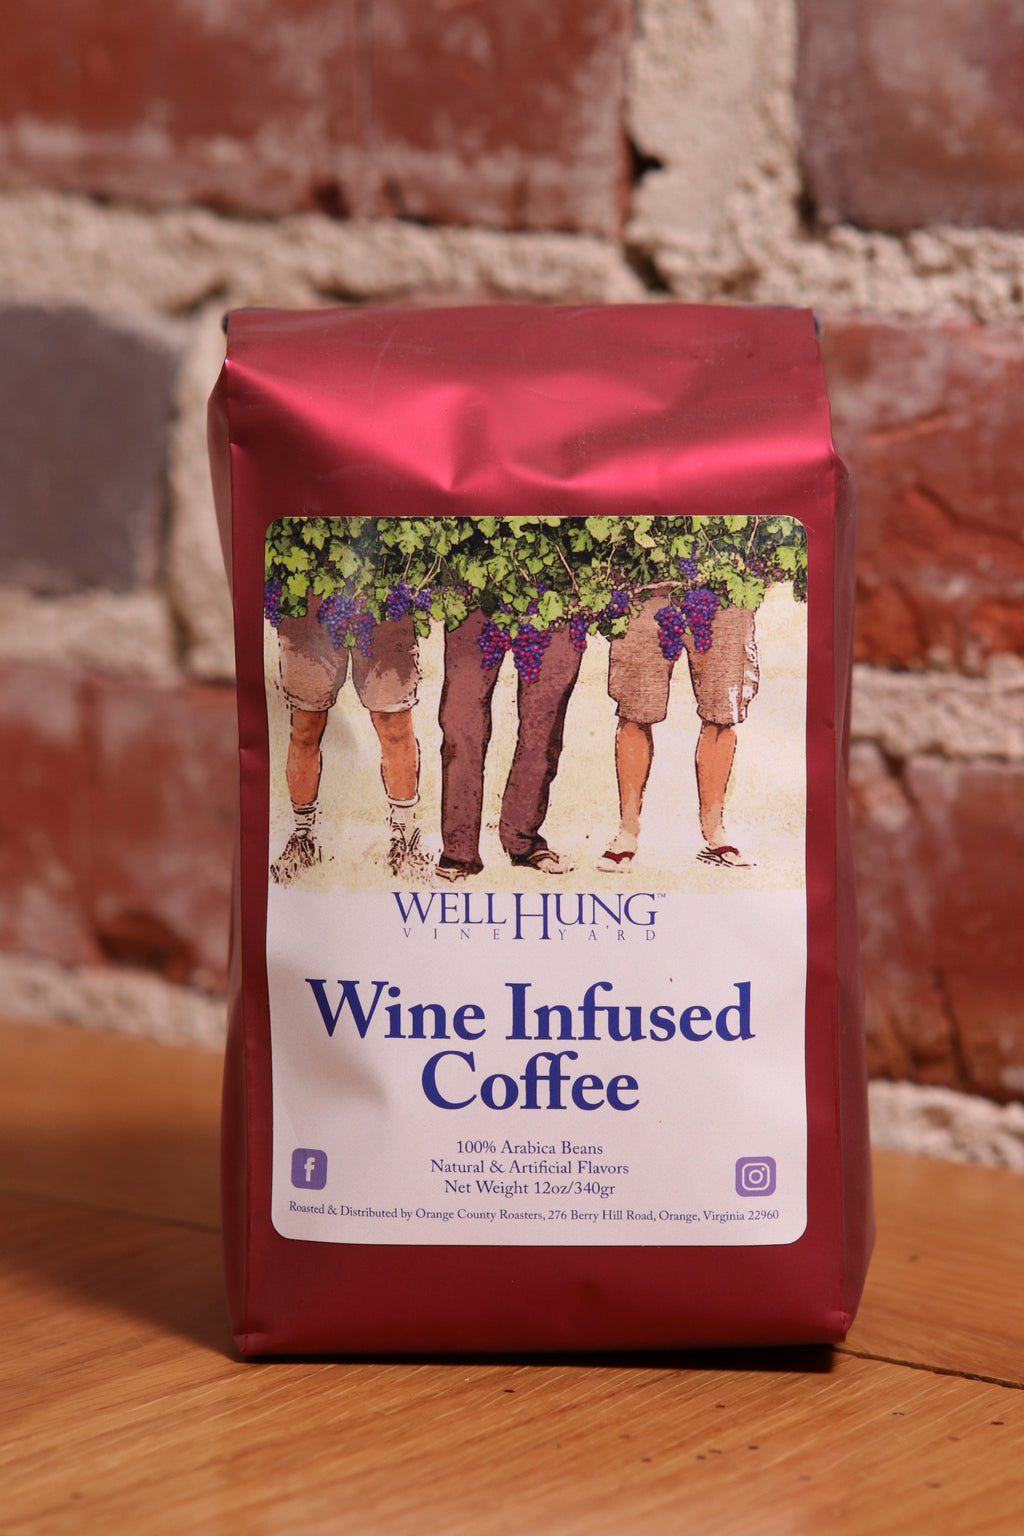 Well Hung Vineyard's Wine Infused coffee!